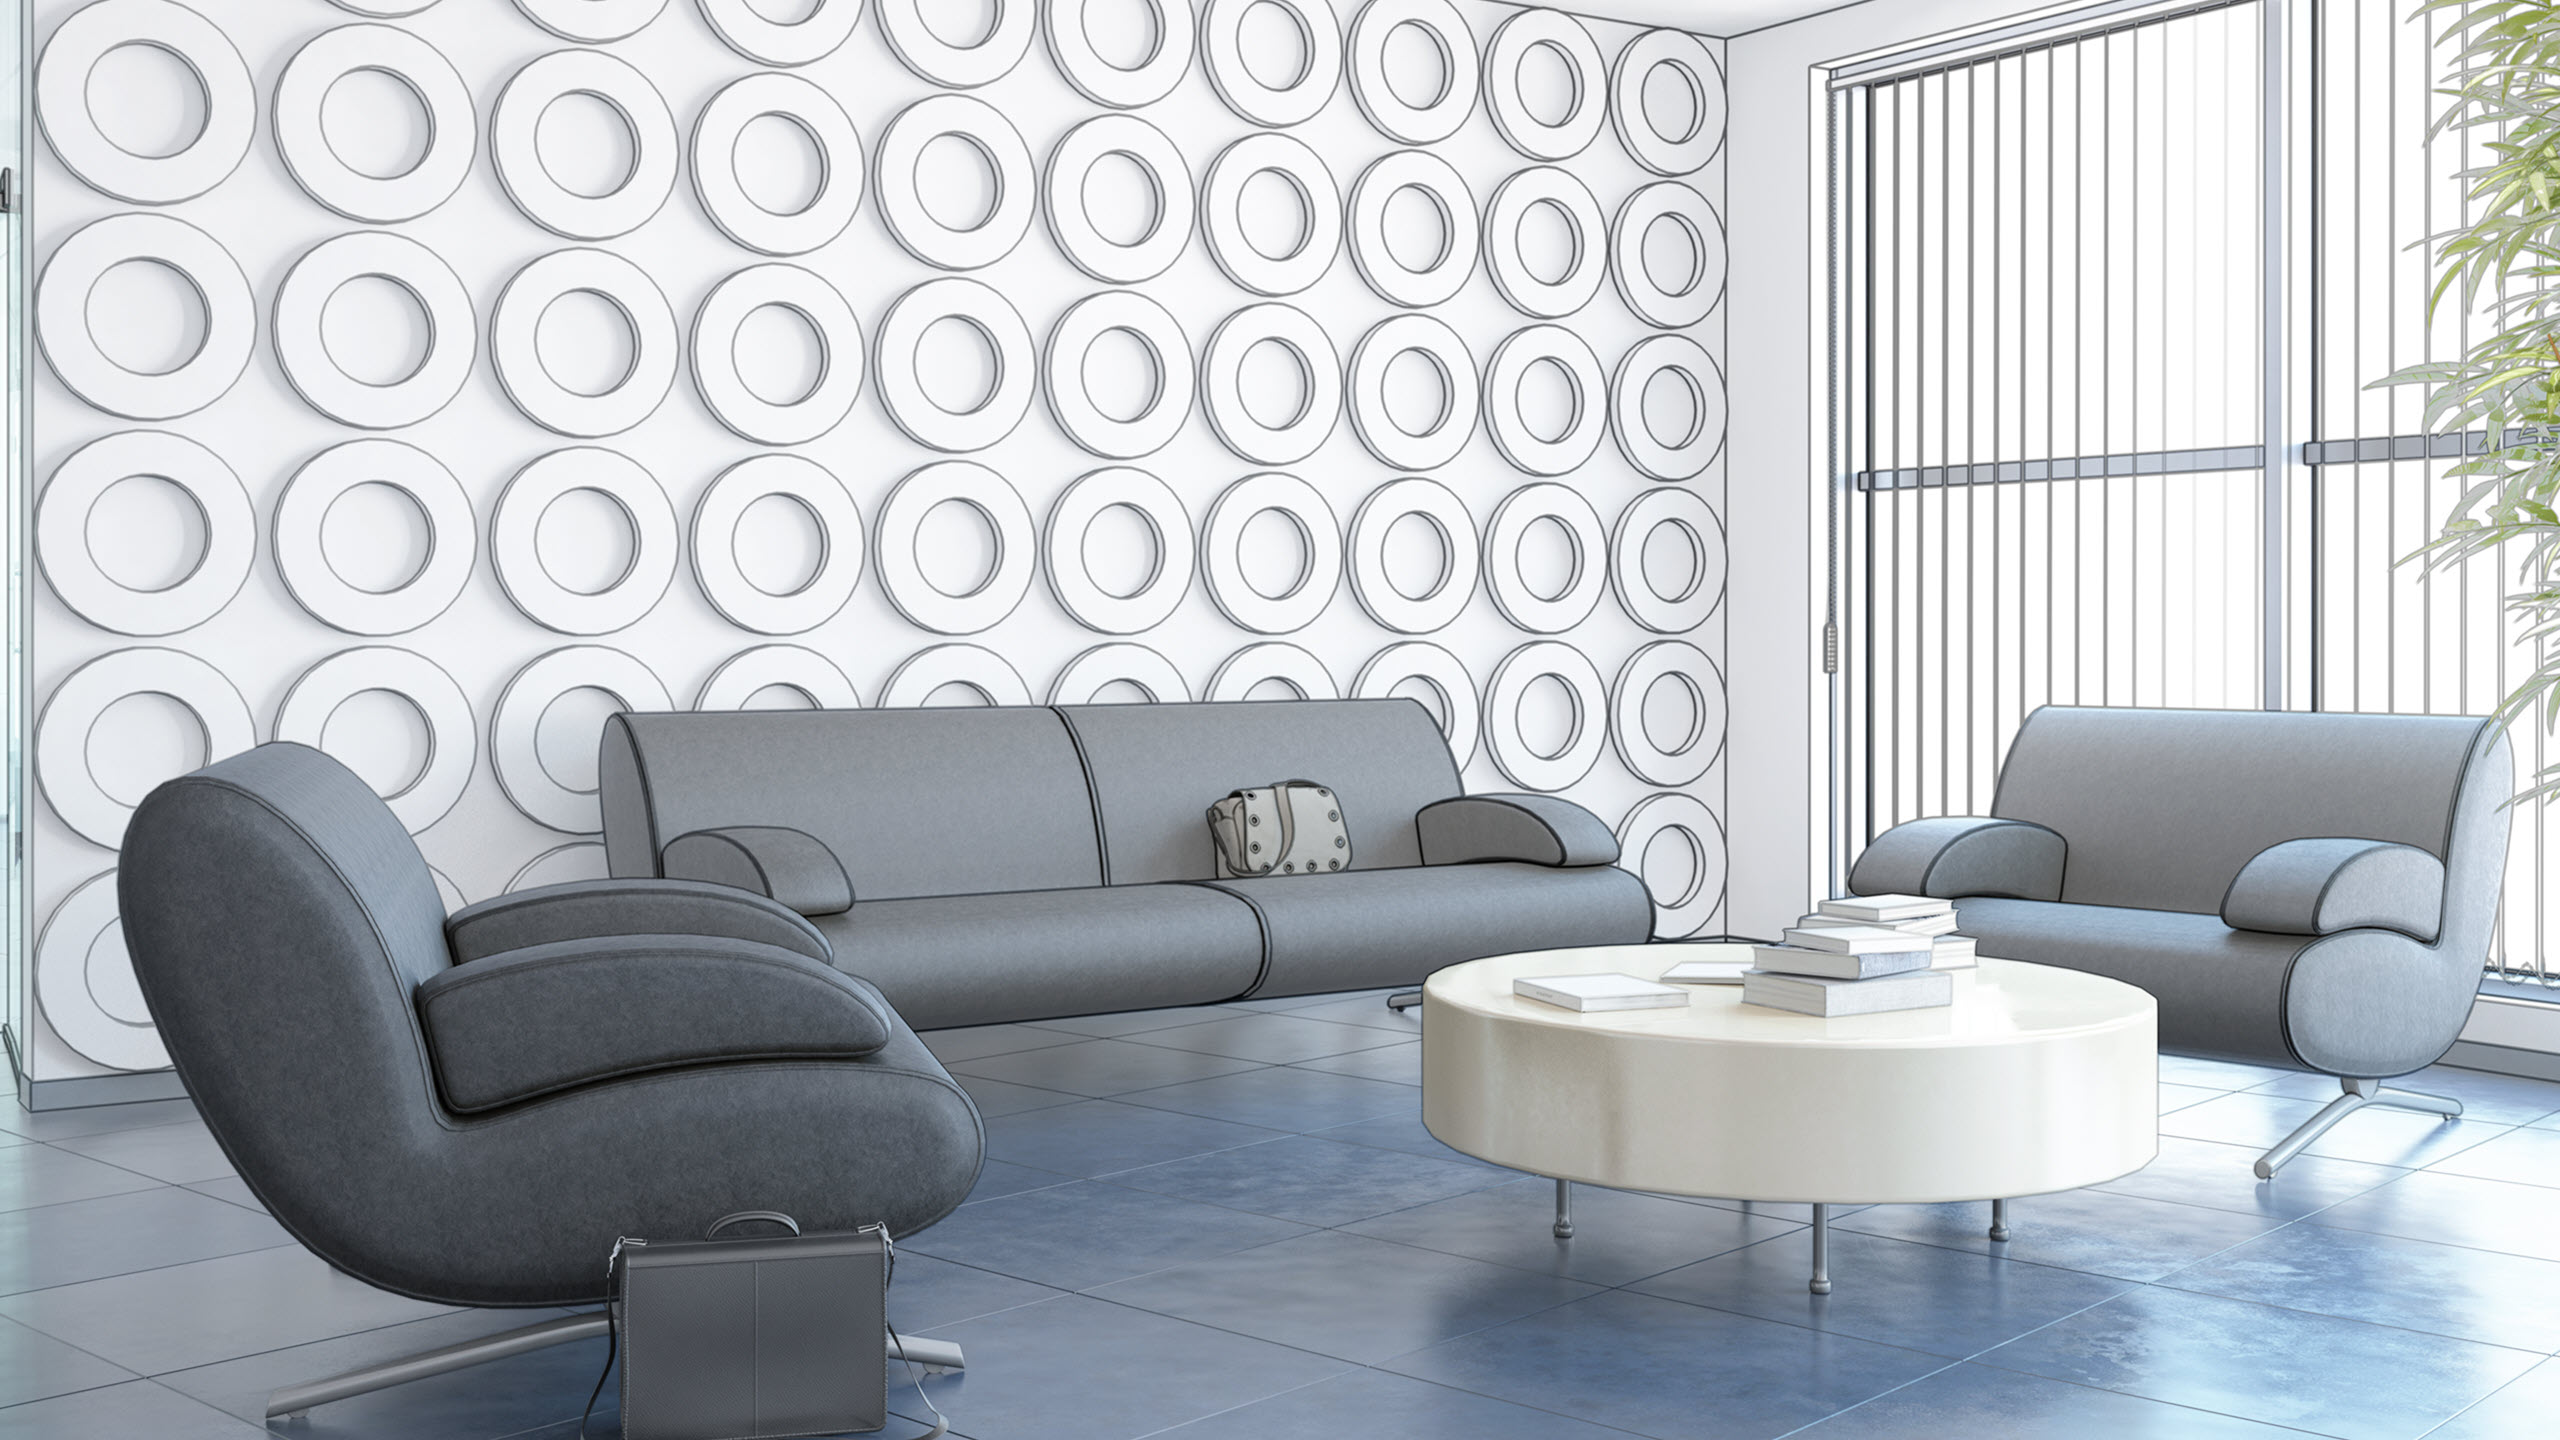 Contemporary room with comfortable sofas